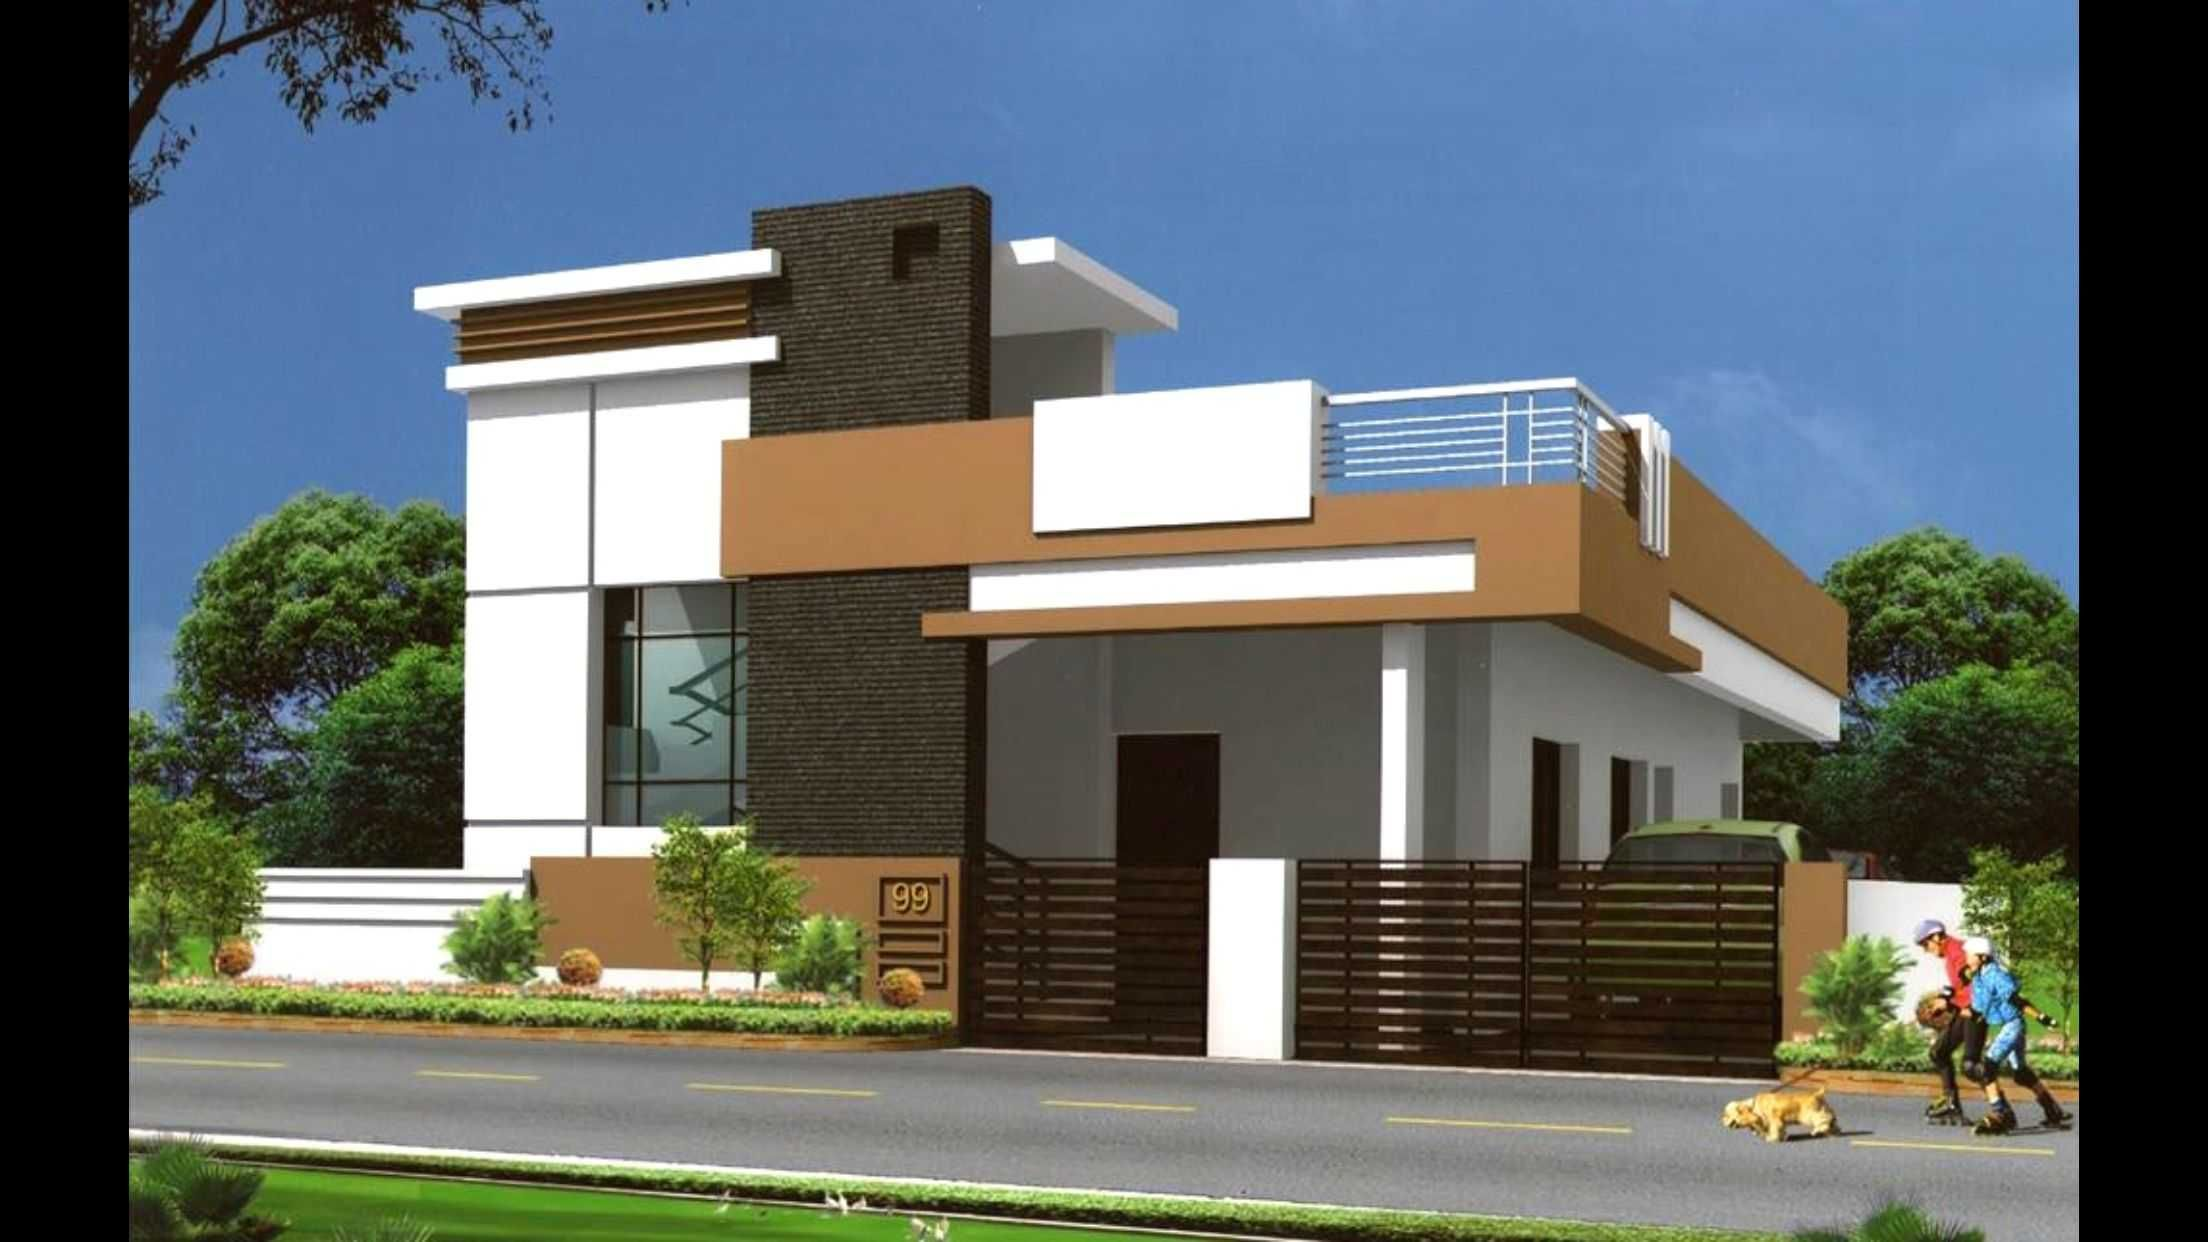 Home Decor Elevations Of Independent Houses Elevations Of Independent Houses Images With Beau House Elevation Bungalow House Design Bungalow Style House Plans